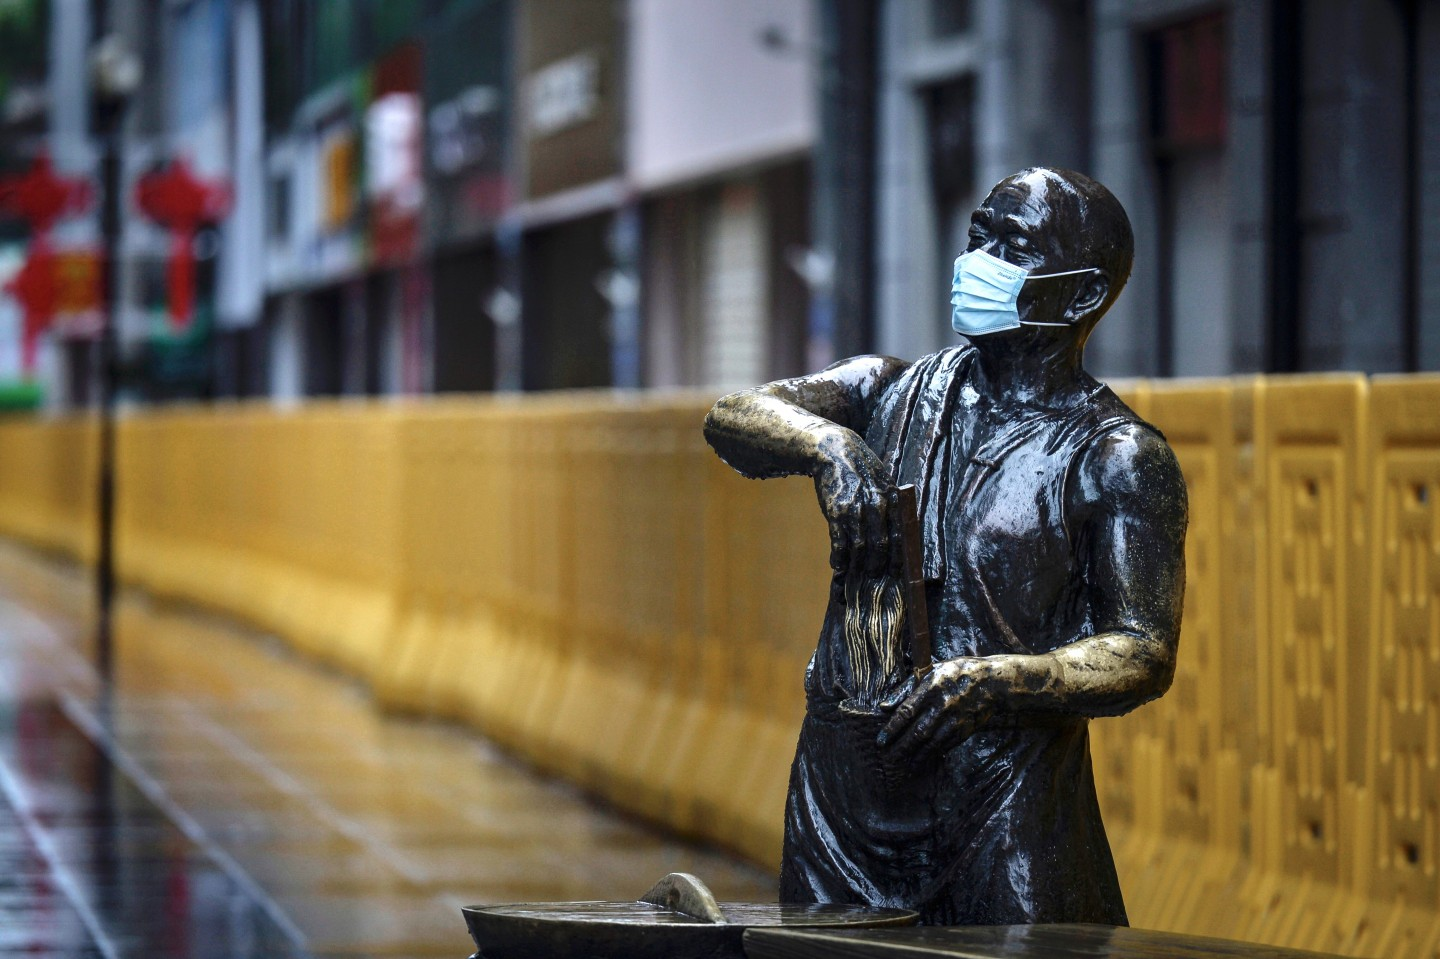 This photo taken on 28 February 2020 shows a statue with a face mask on in Wuhan. (STR/AFP)